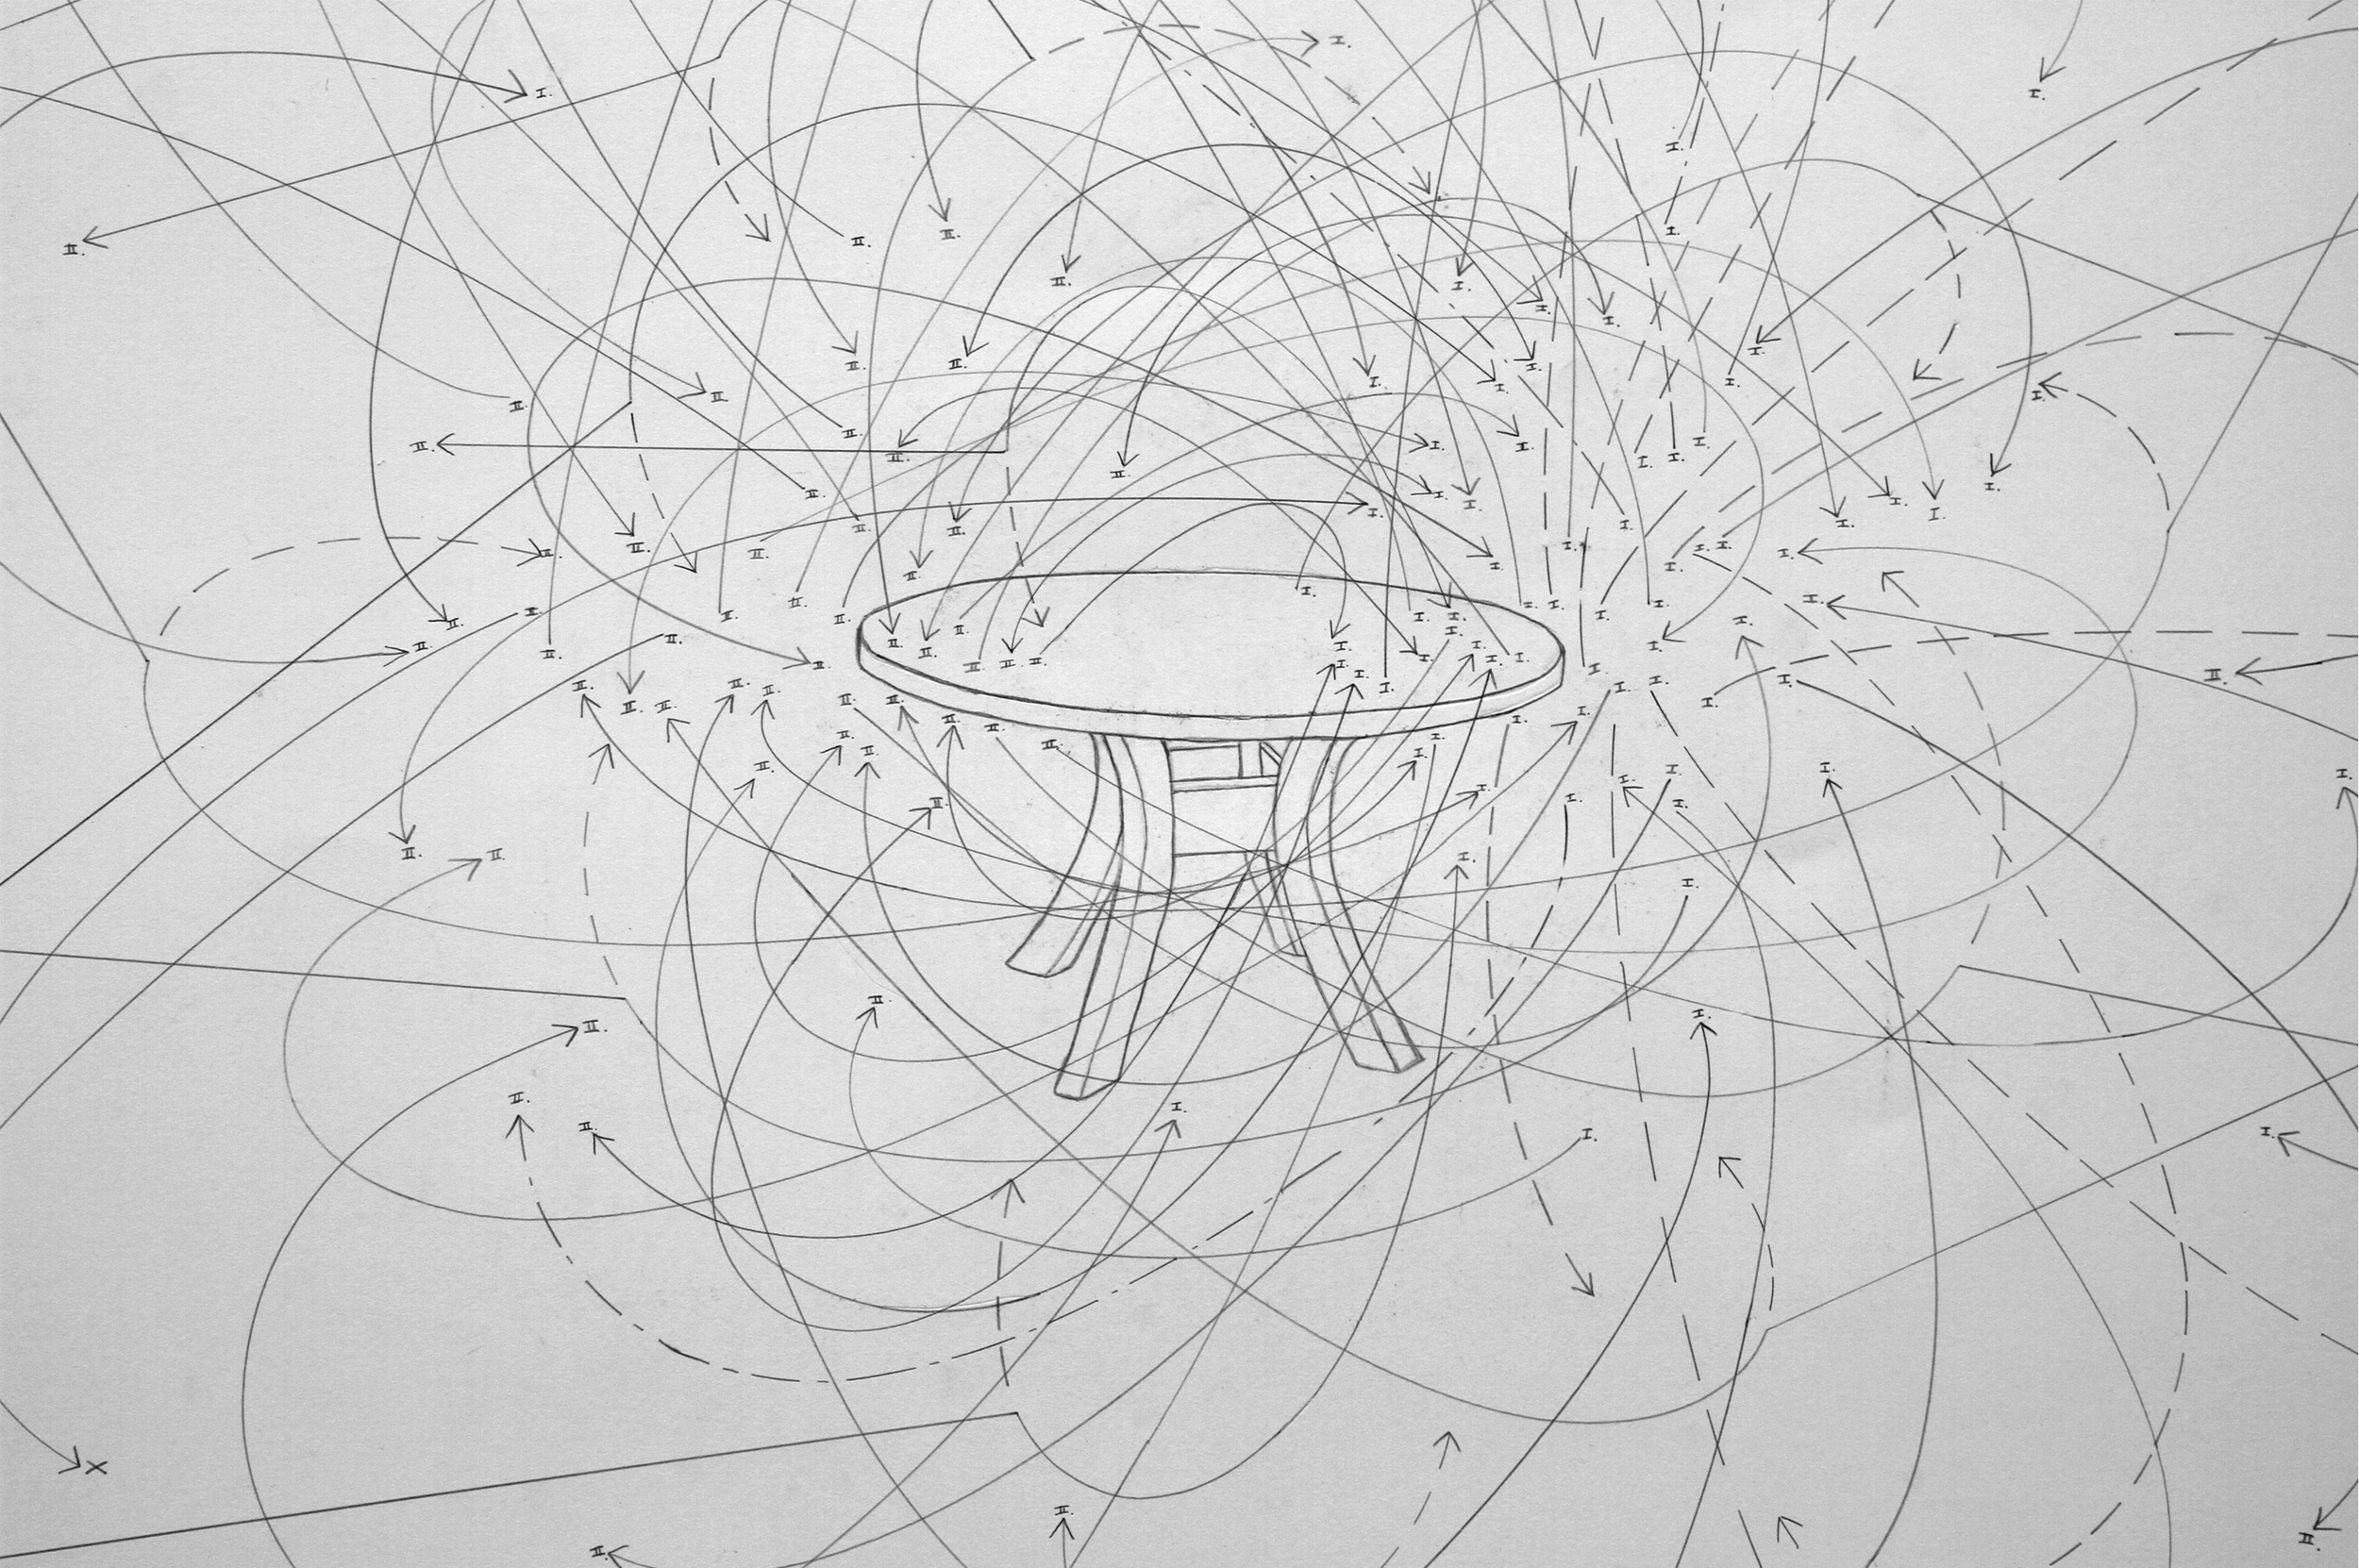 Dinner Conversation: 2 subjects, salmon sashimi, mushroom miso udon, seasoned seaweed salad, sushi rice, white wine. 03/18/12, 9:13PM, 19:42 minutes, Los Angeles, CA.   (detail) 2012 graphite on paper 30x40 inches